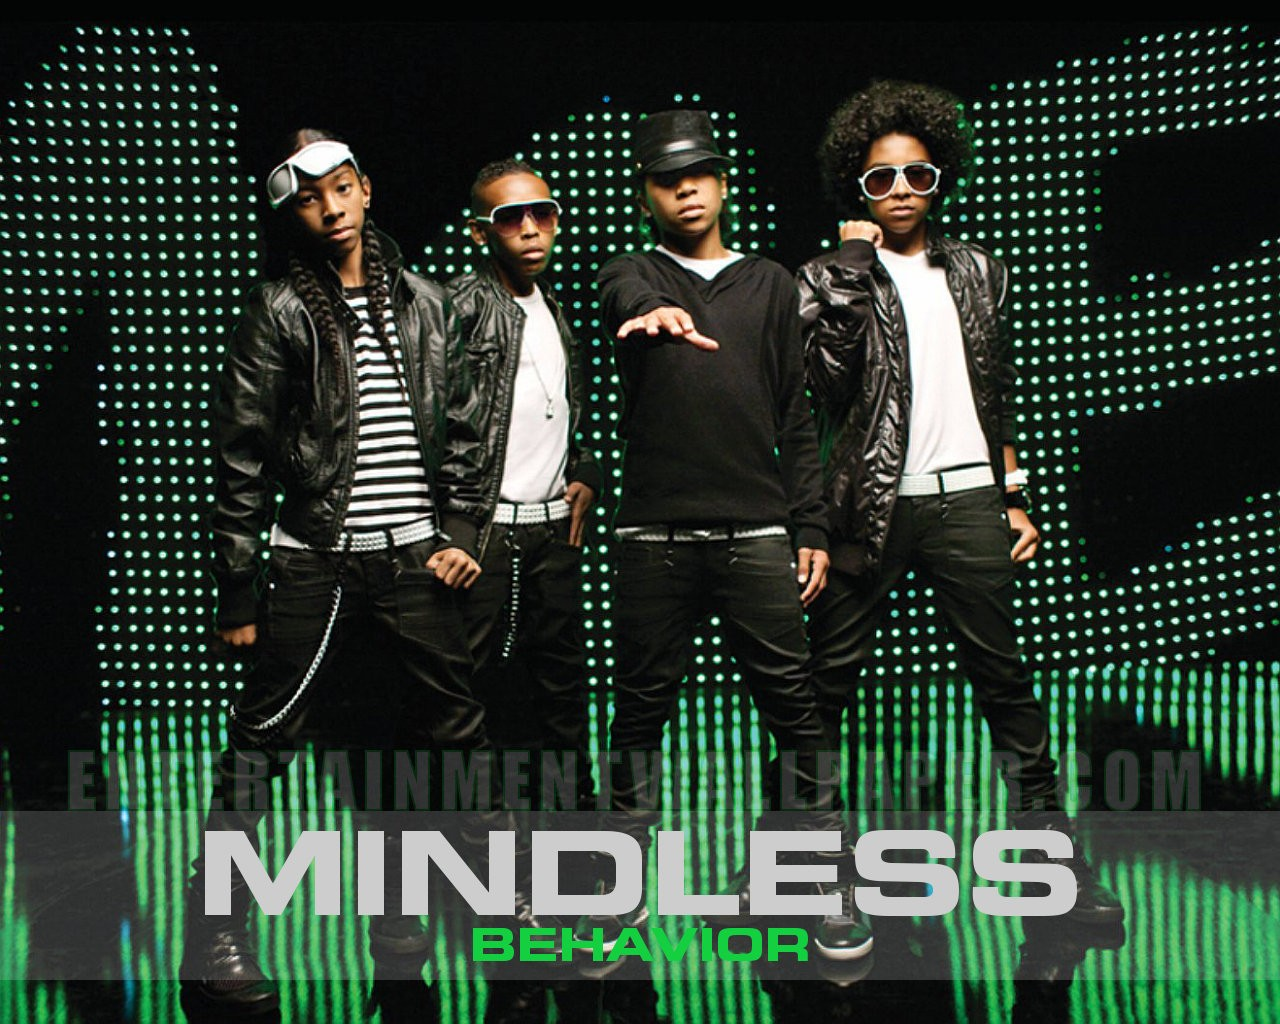 mindless behavior images mb hd wallpaper and background